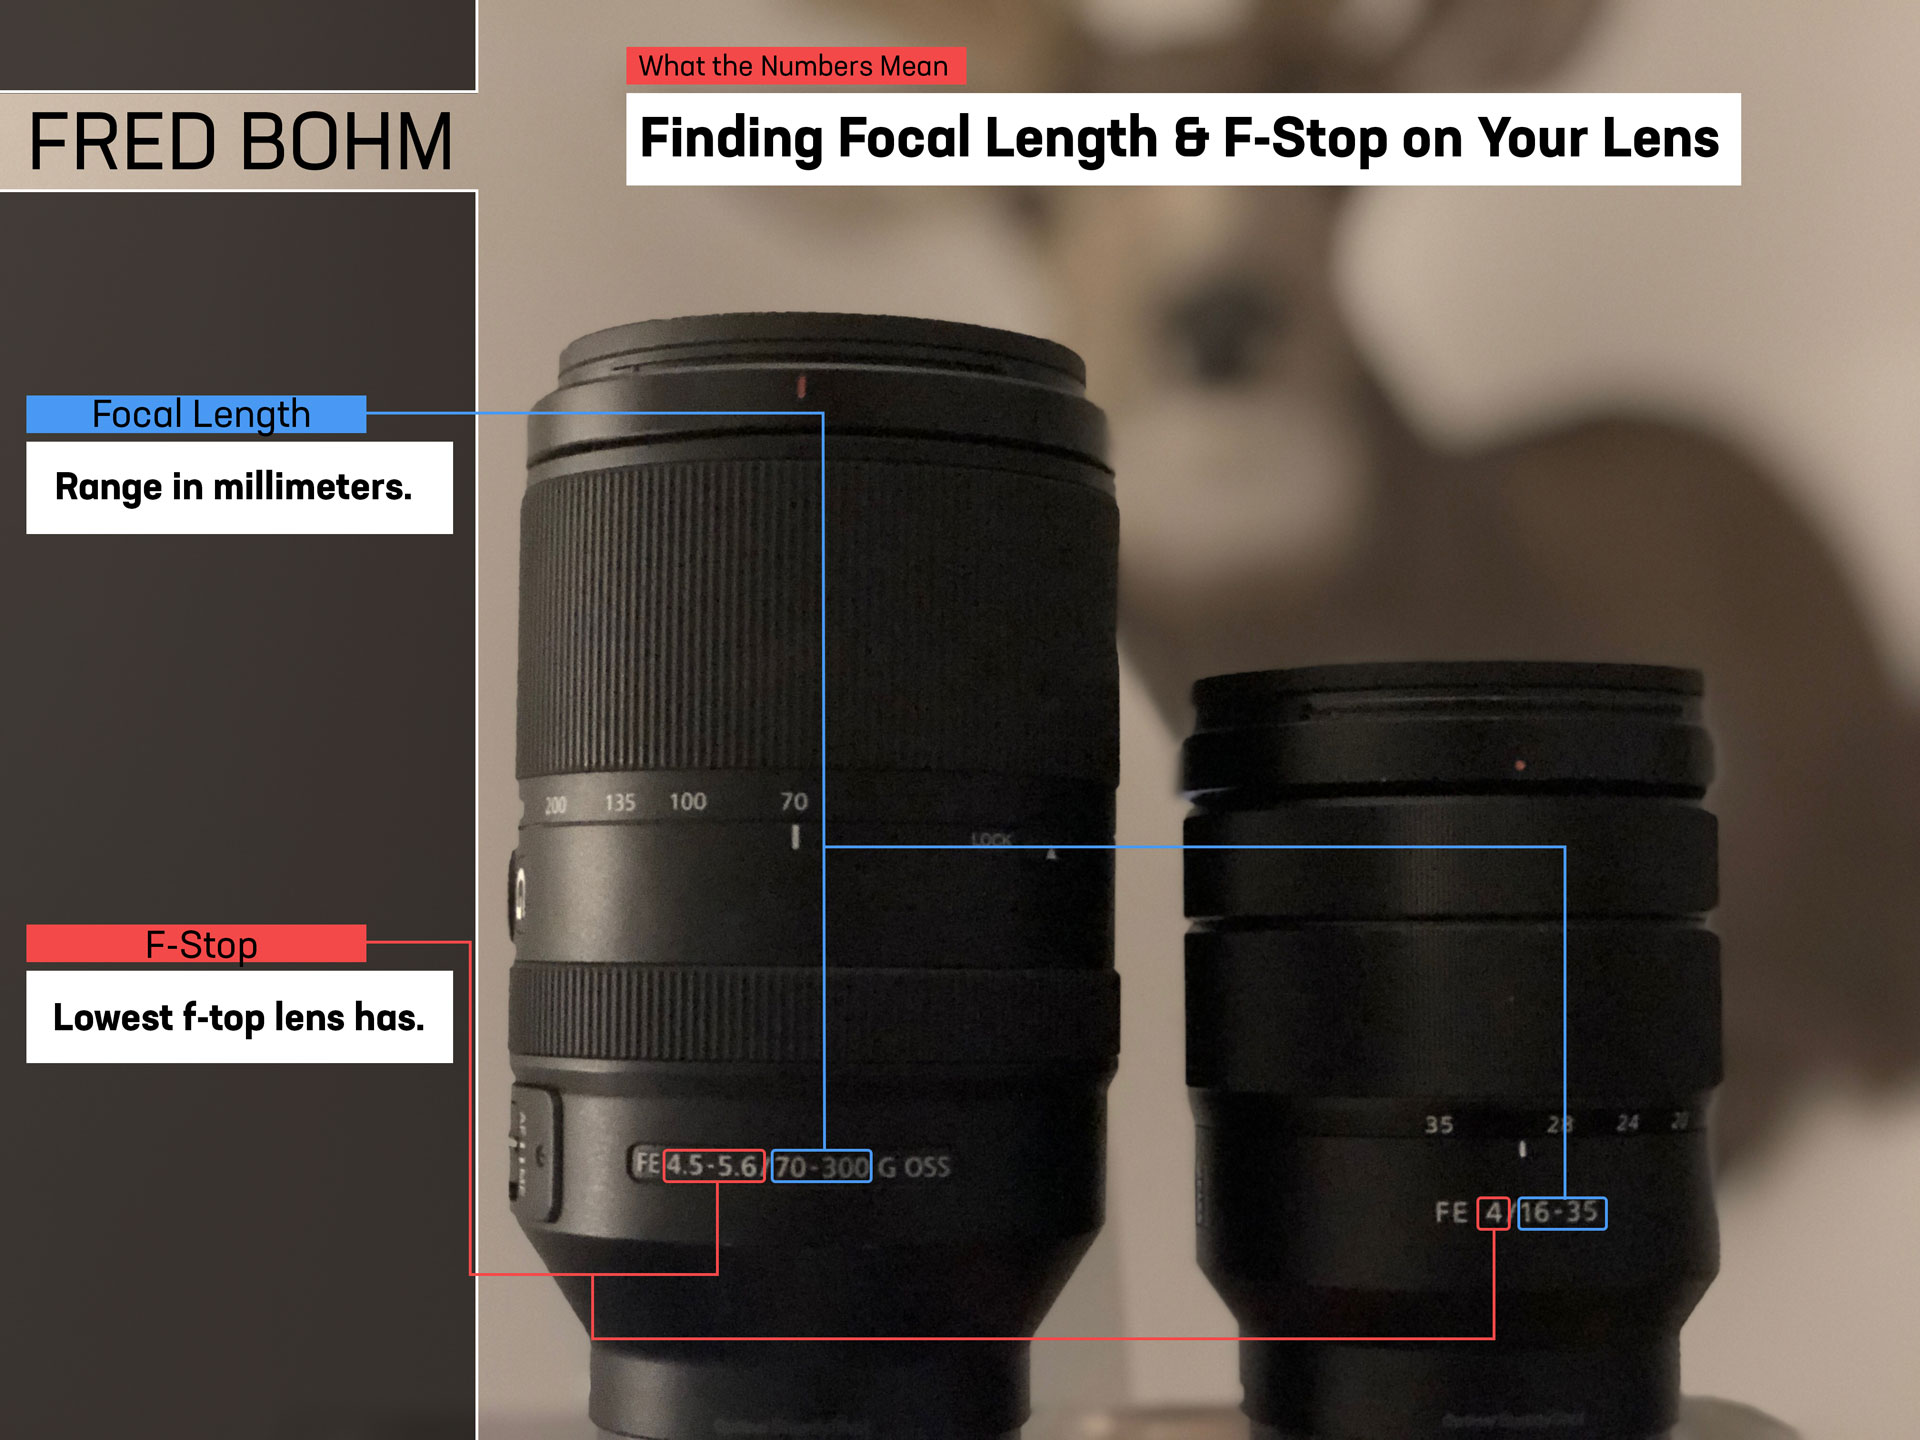 Here is where you can find the lens focal length and f-stop.